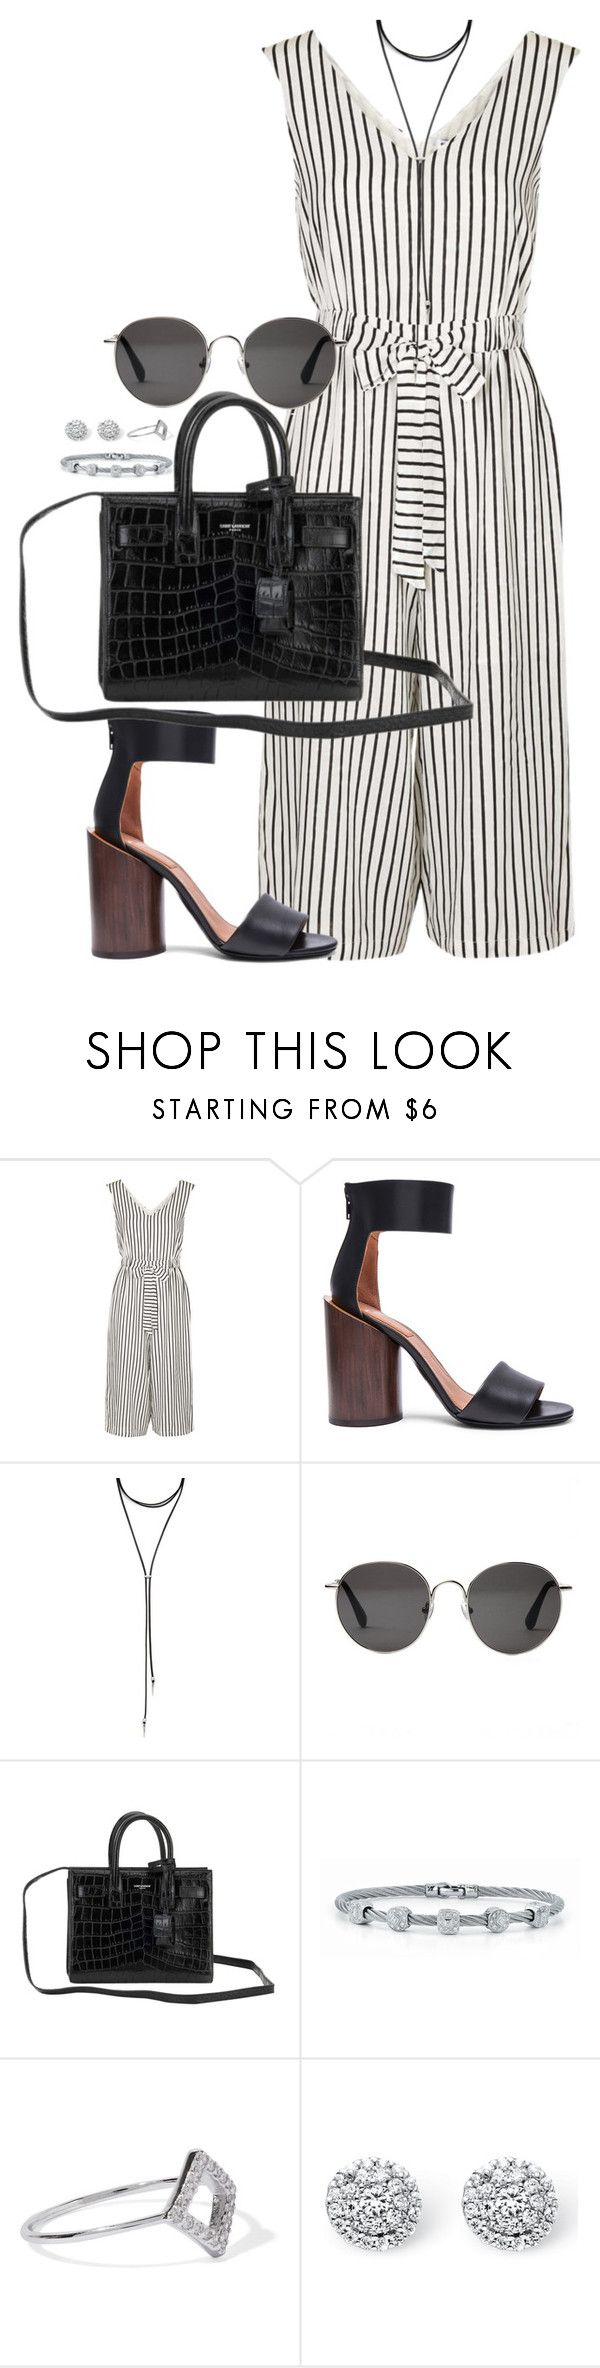 """#"" by bruna-linda-12 on Polyvore featuring moda, Topshop, Givenchy, Forever 21, The Row, Yves Saint Laurent, Alor, Noir Jewelry e Palm Beach Jewelry"